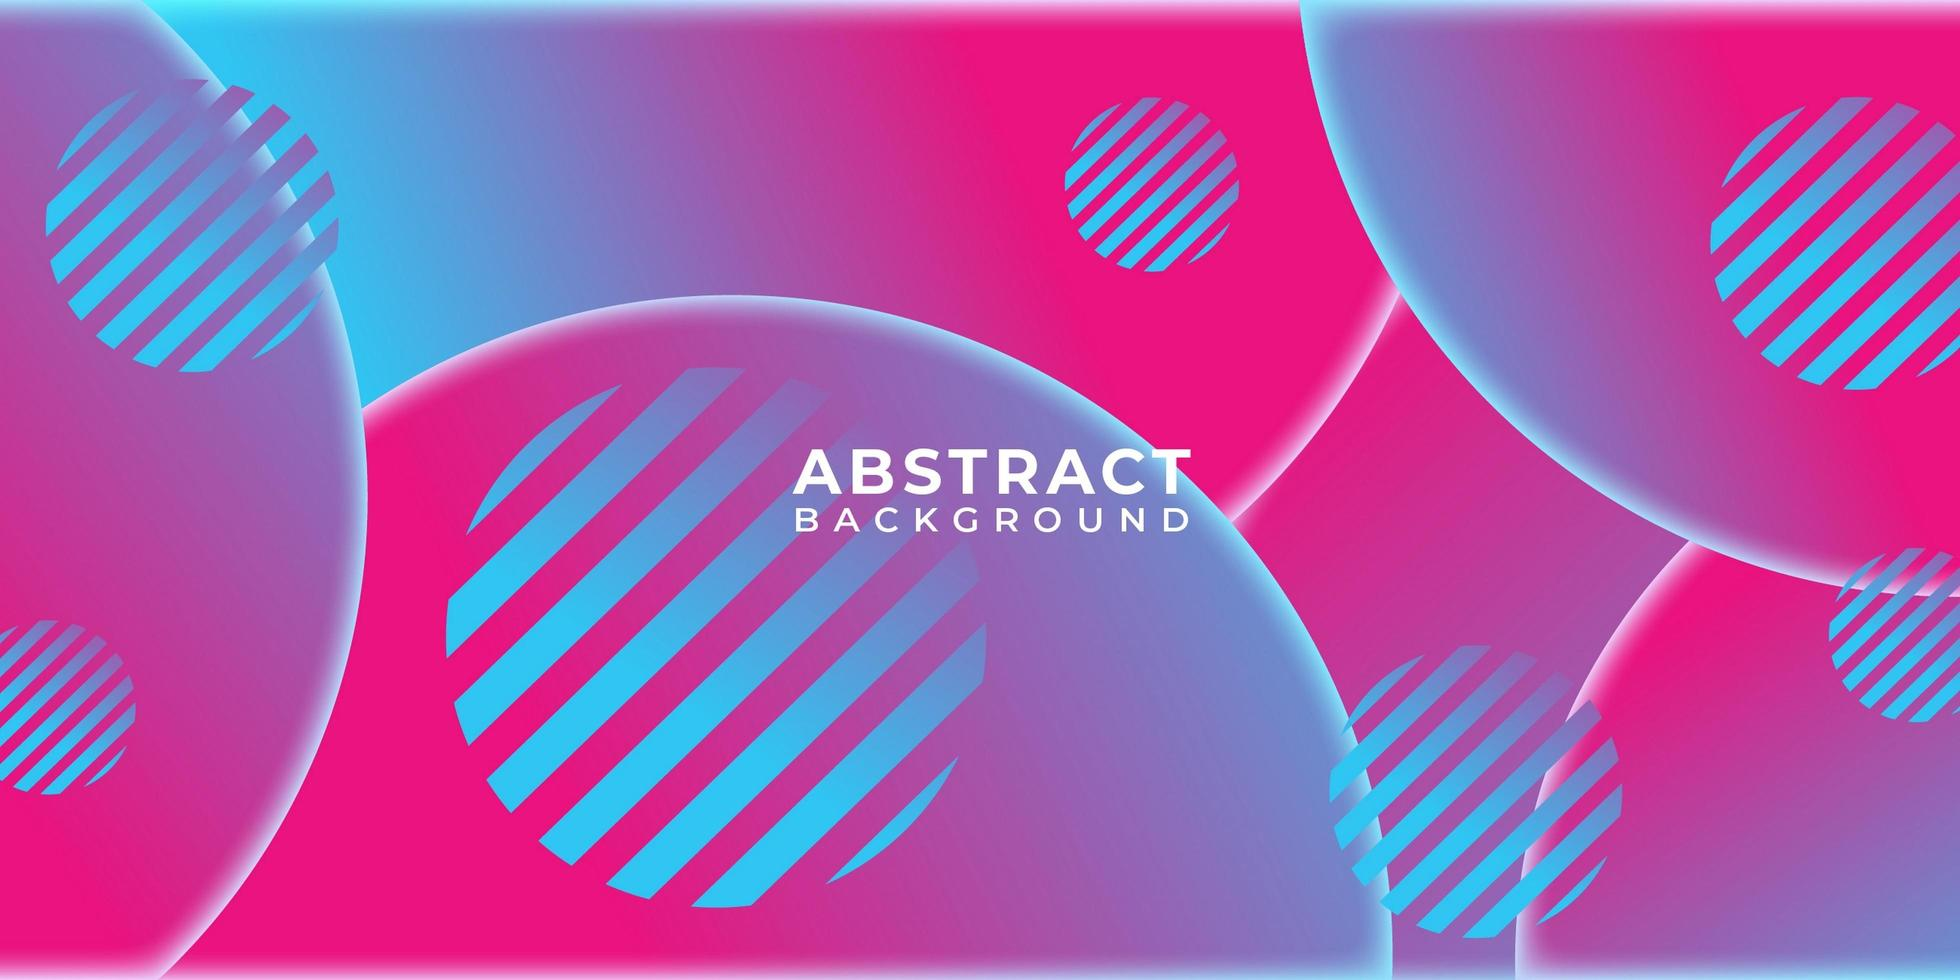 Overlapping Circular Neon Pink Shapes Background vector